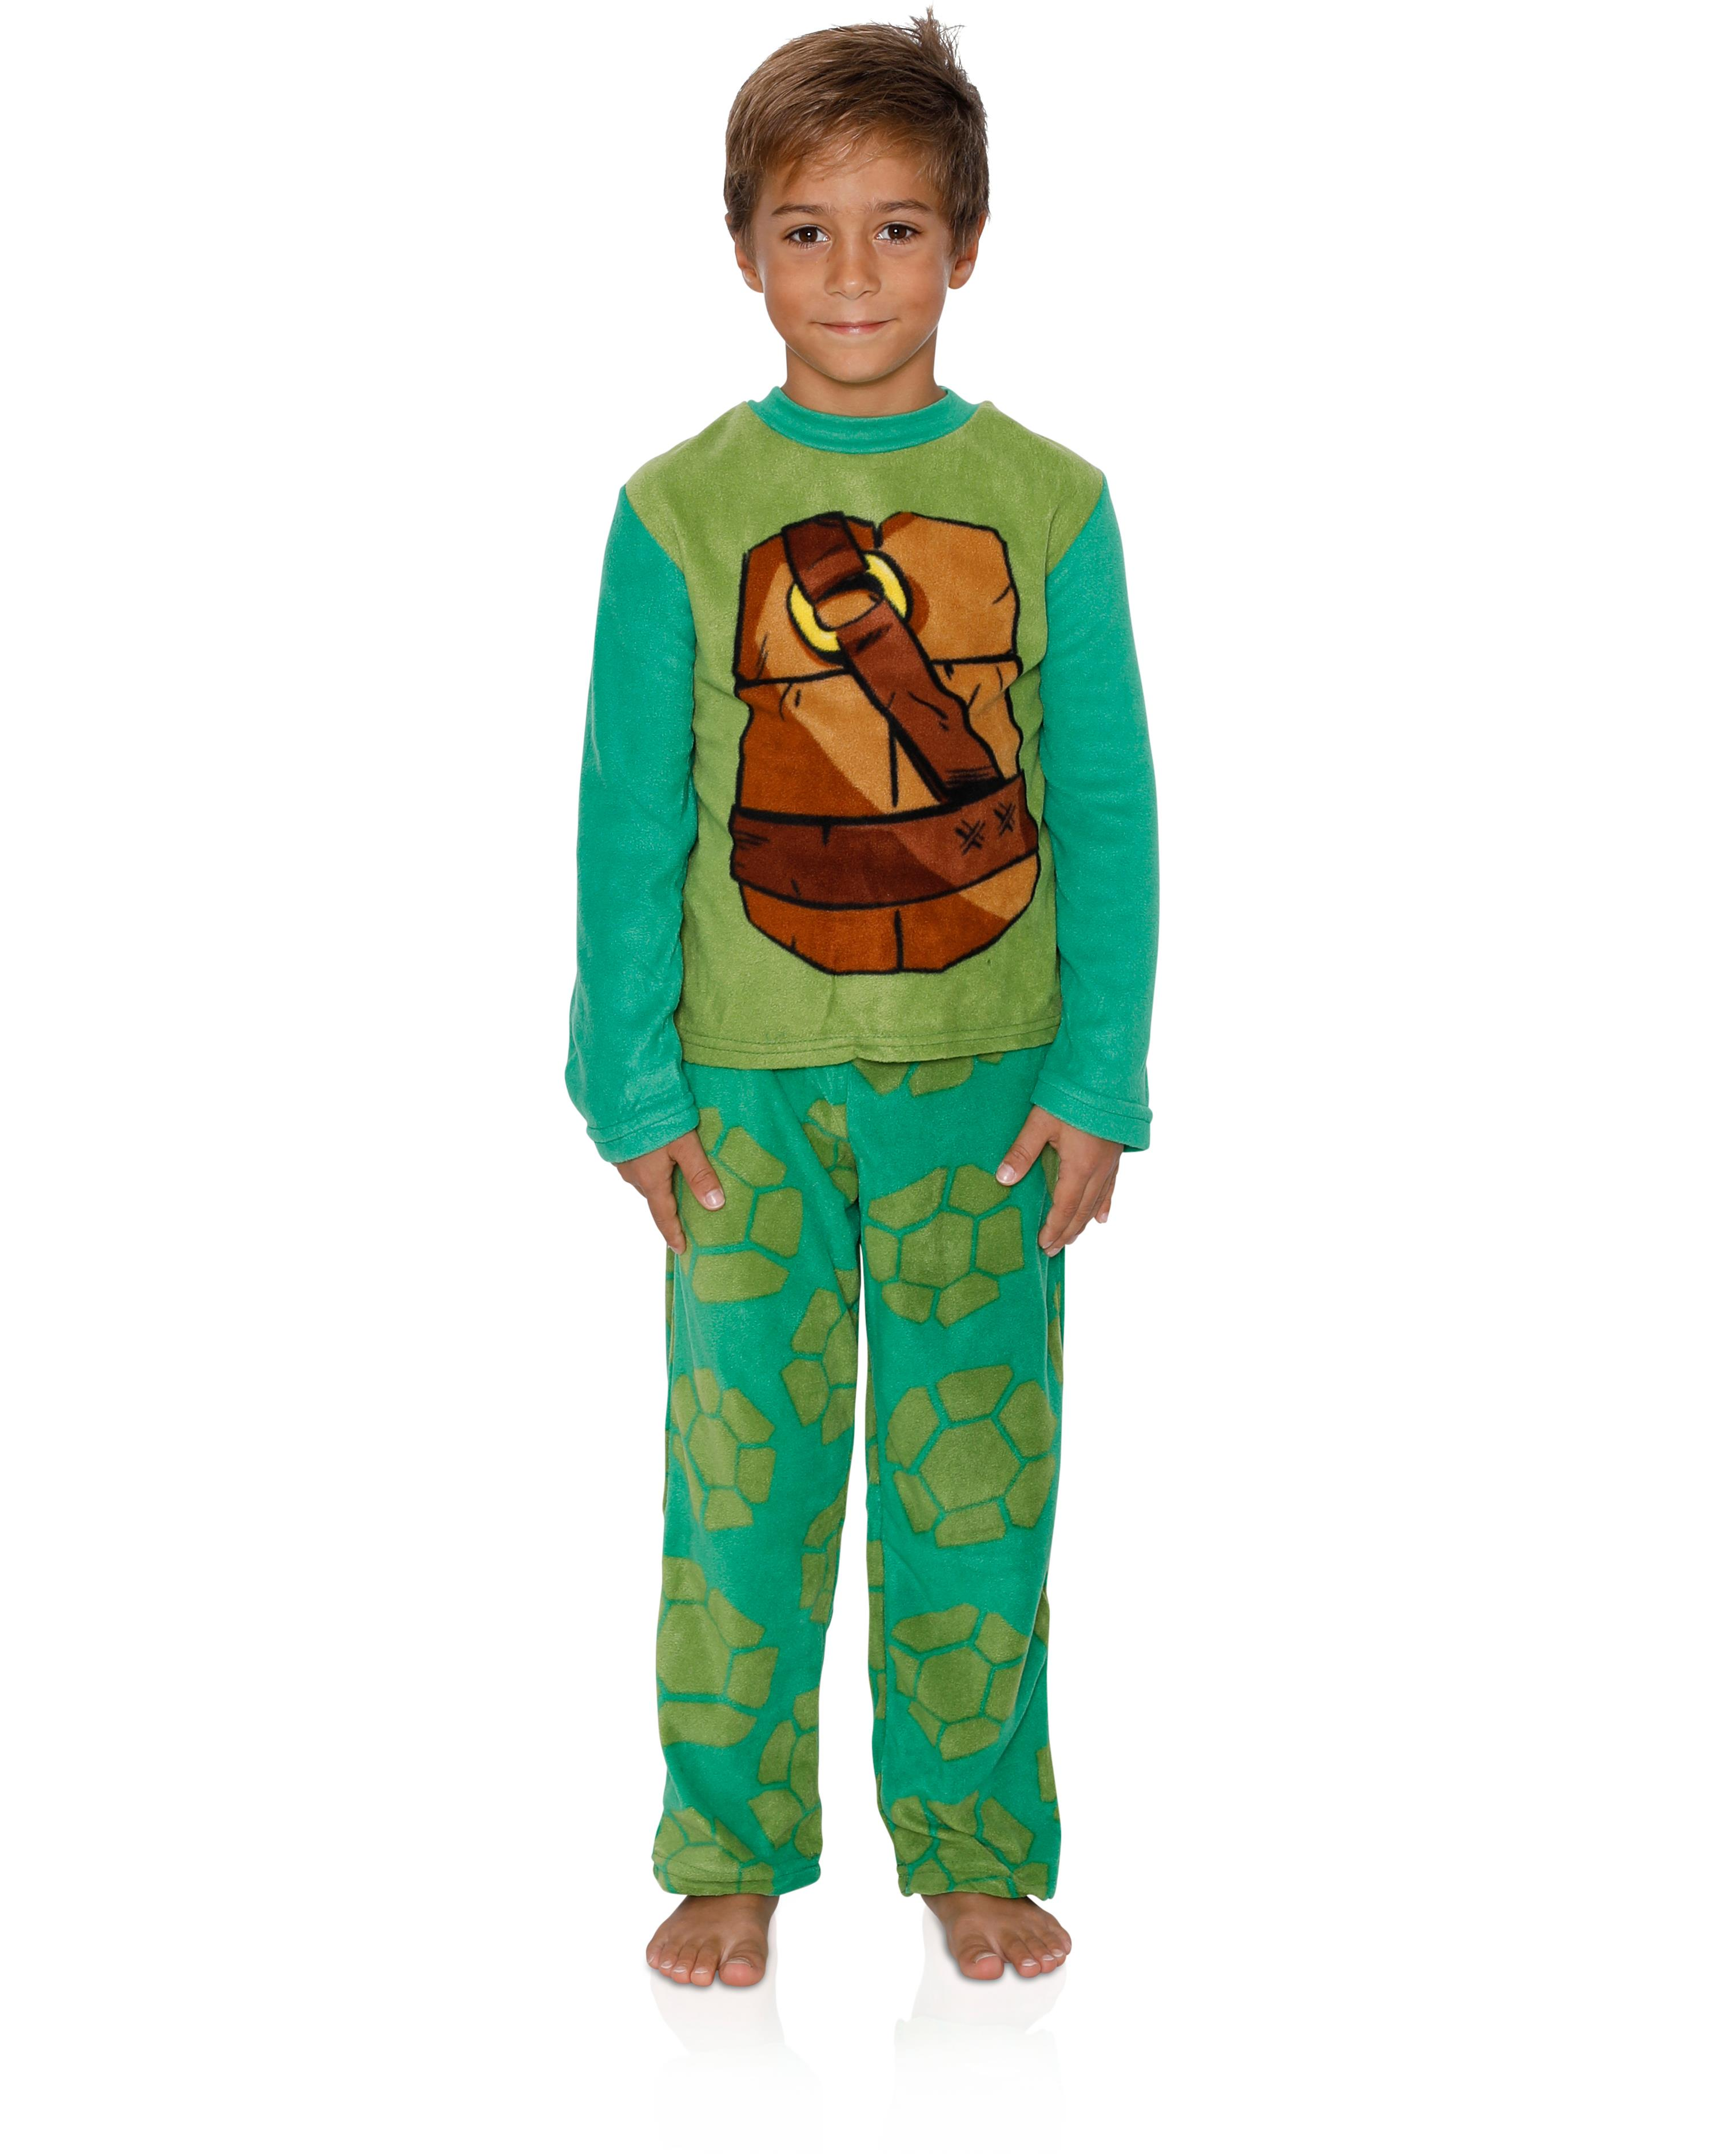 Ninja Turtles Boys Fleece Pajama Set, Sizes 4-10, Green, Size: 4